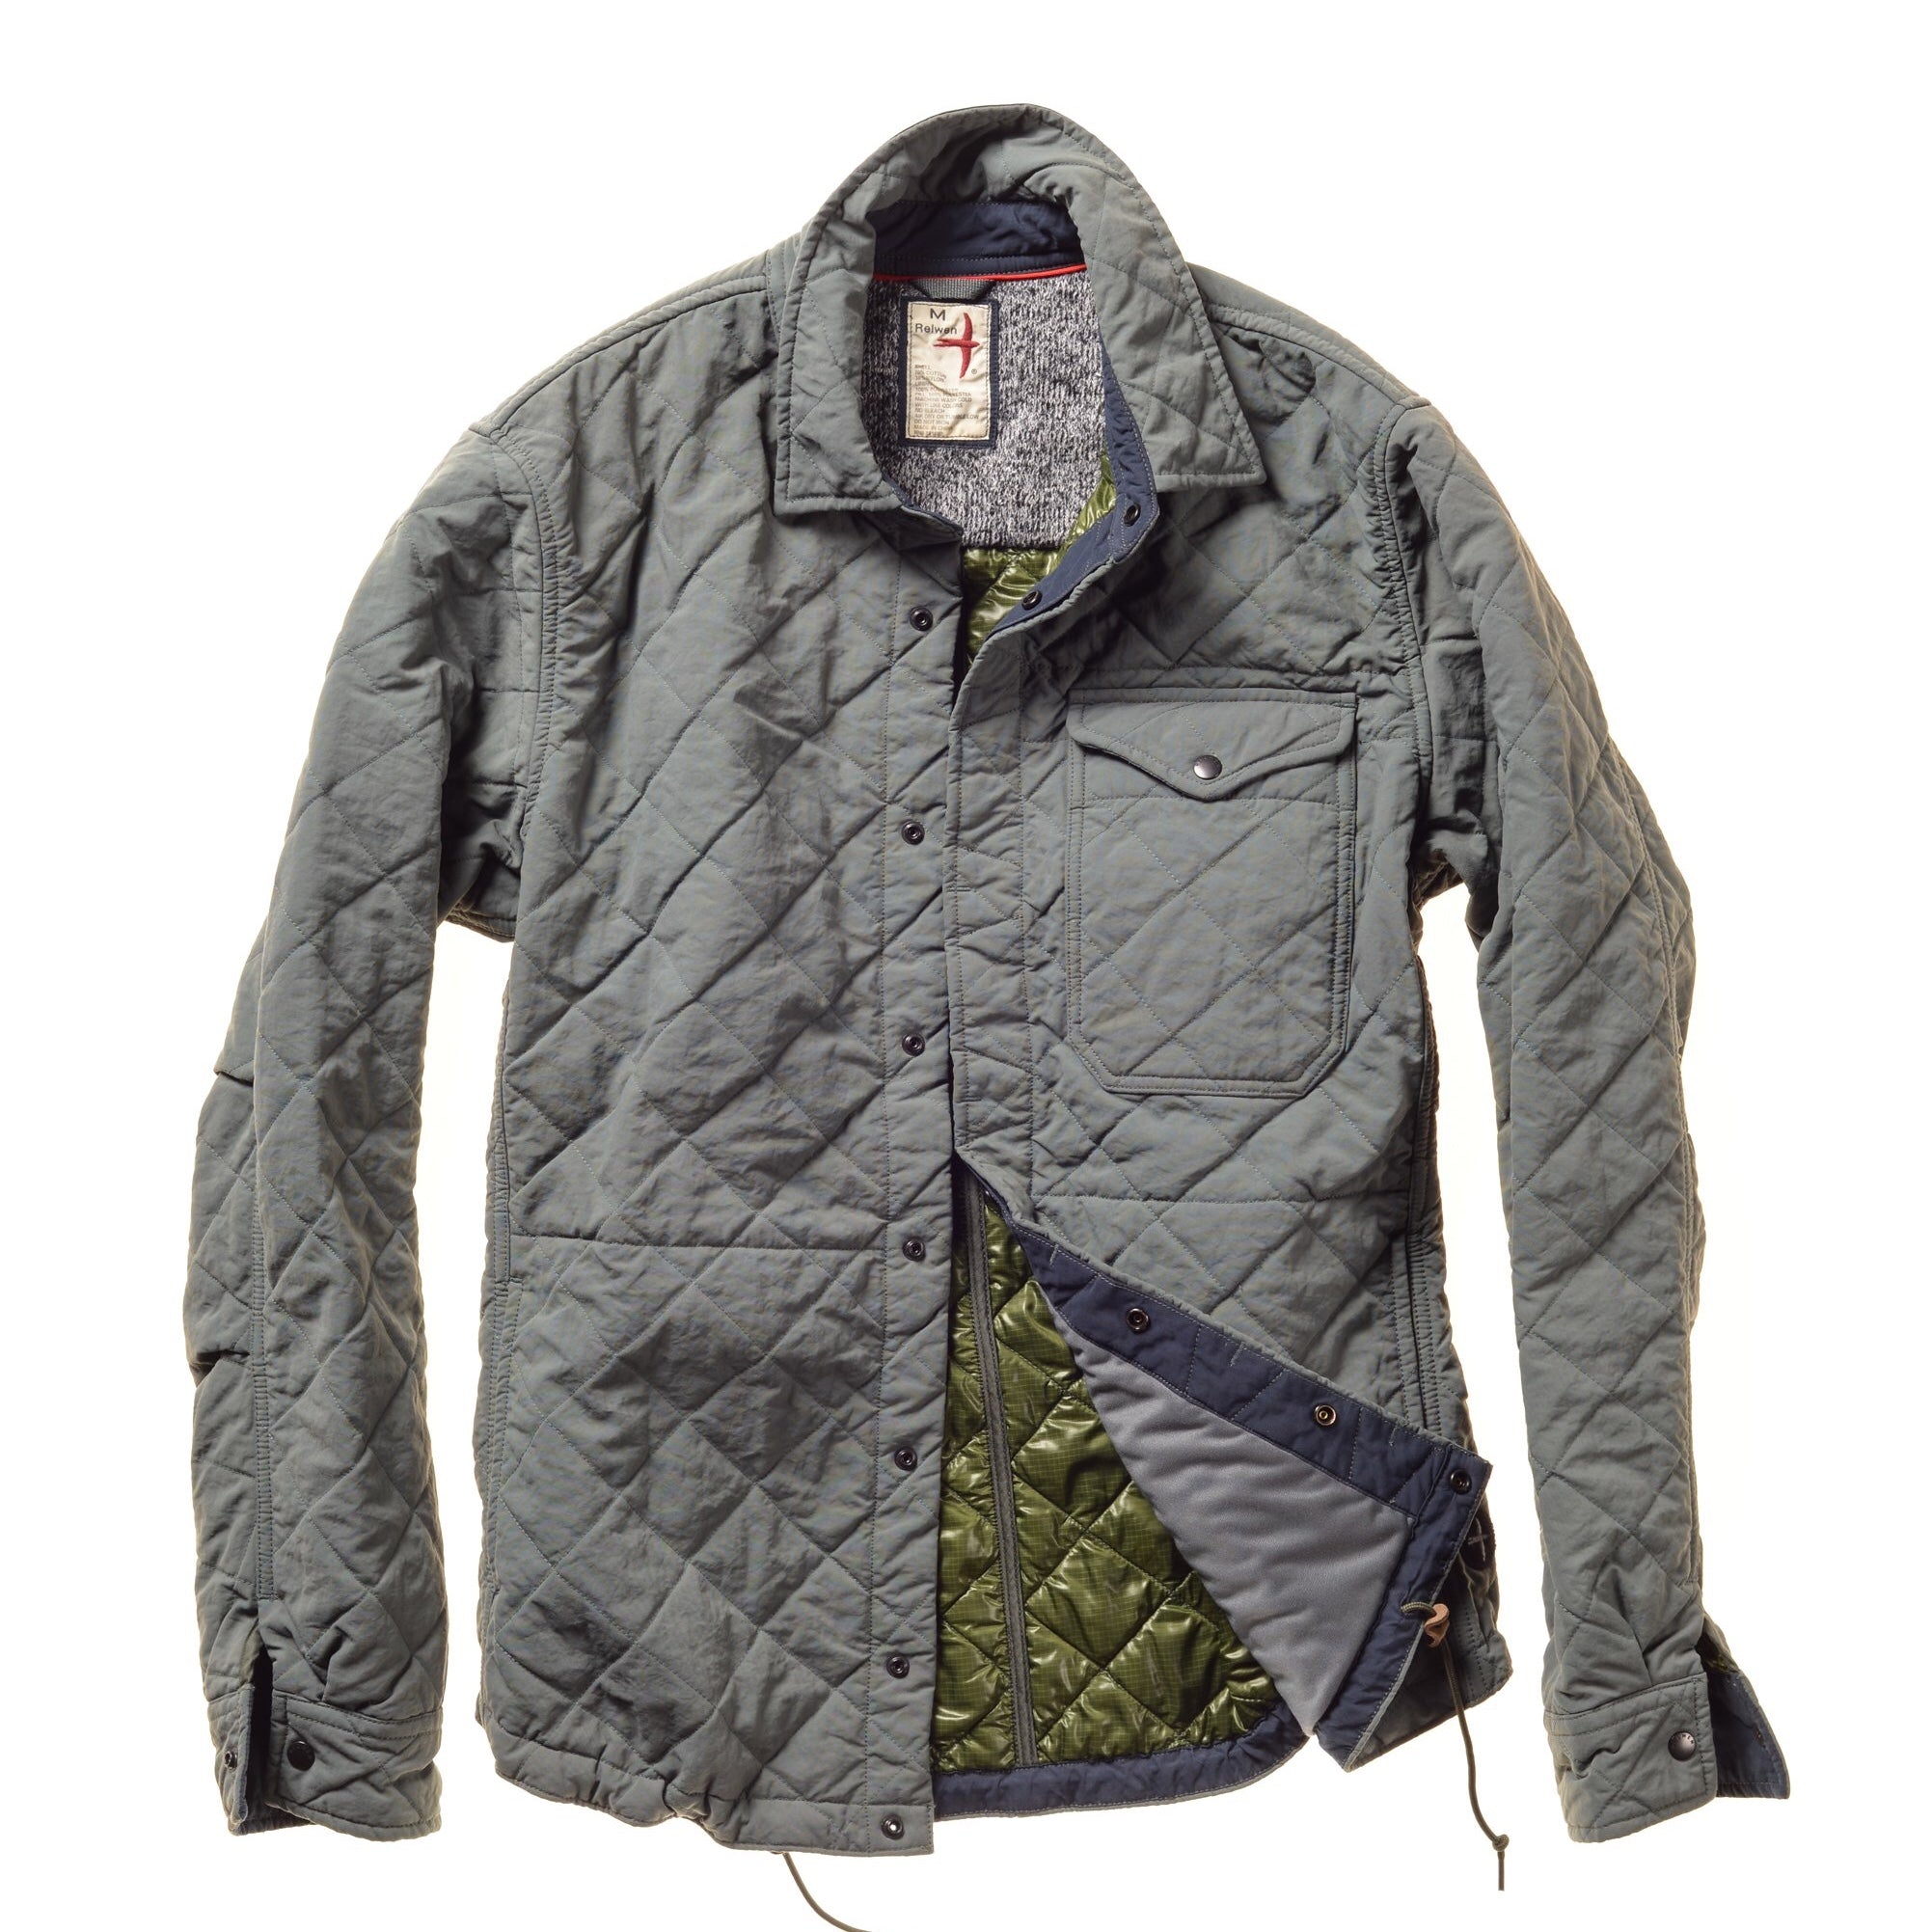 Relwen - Quilted CPO Shirt Jacket